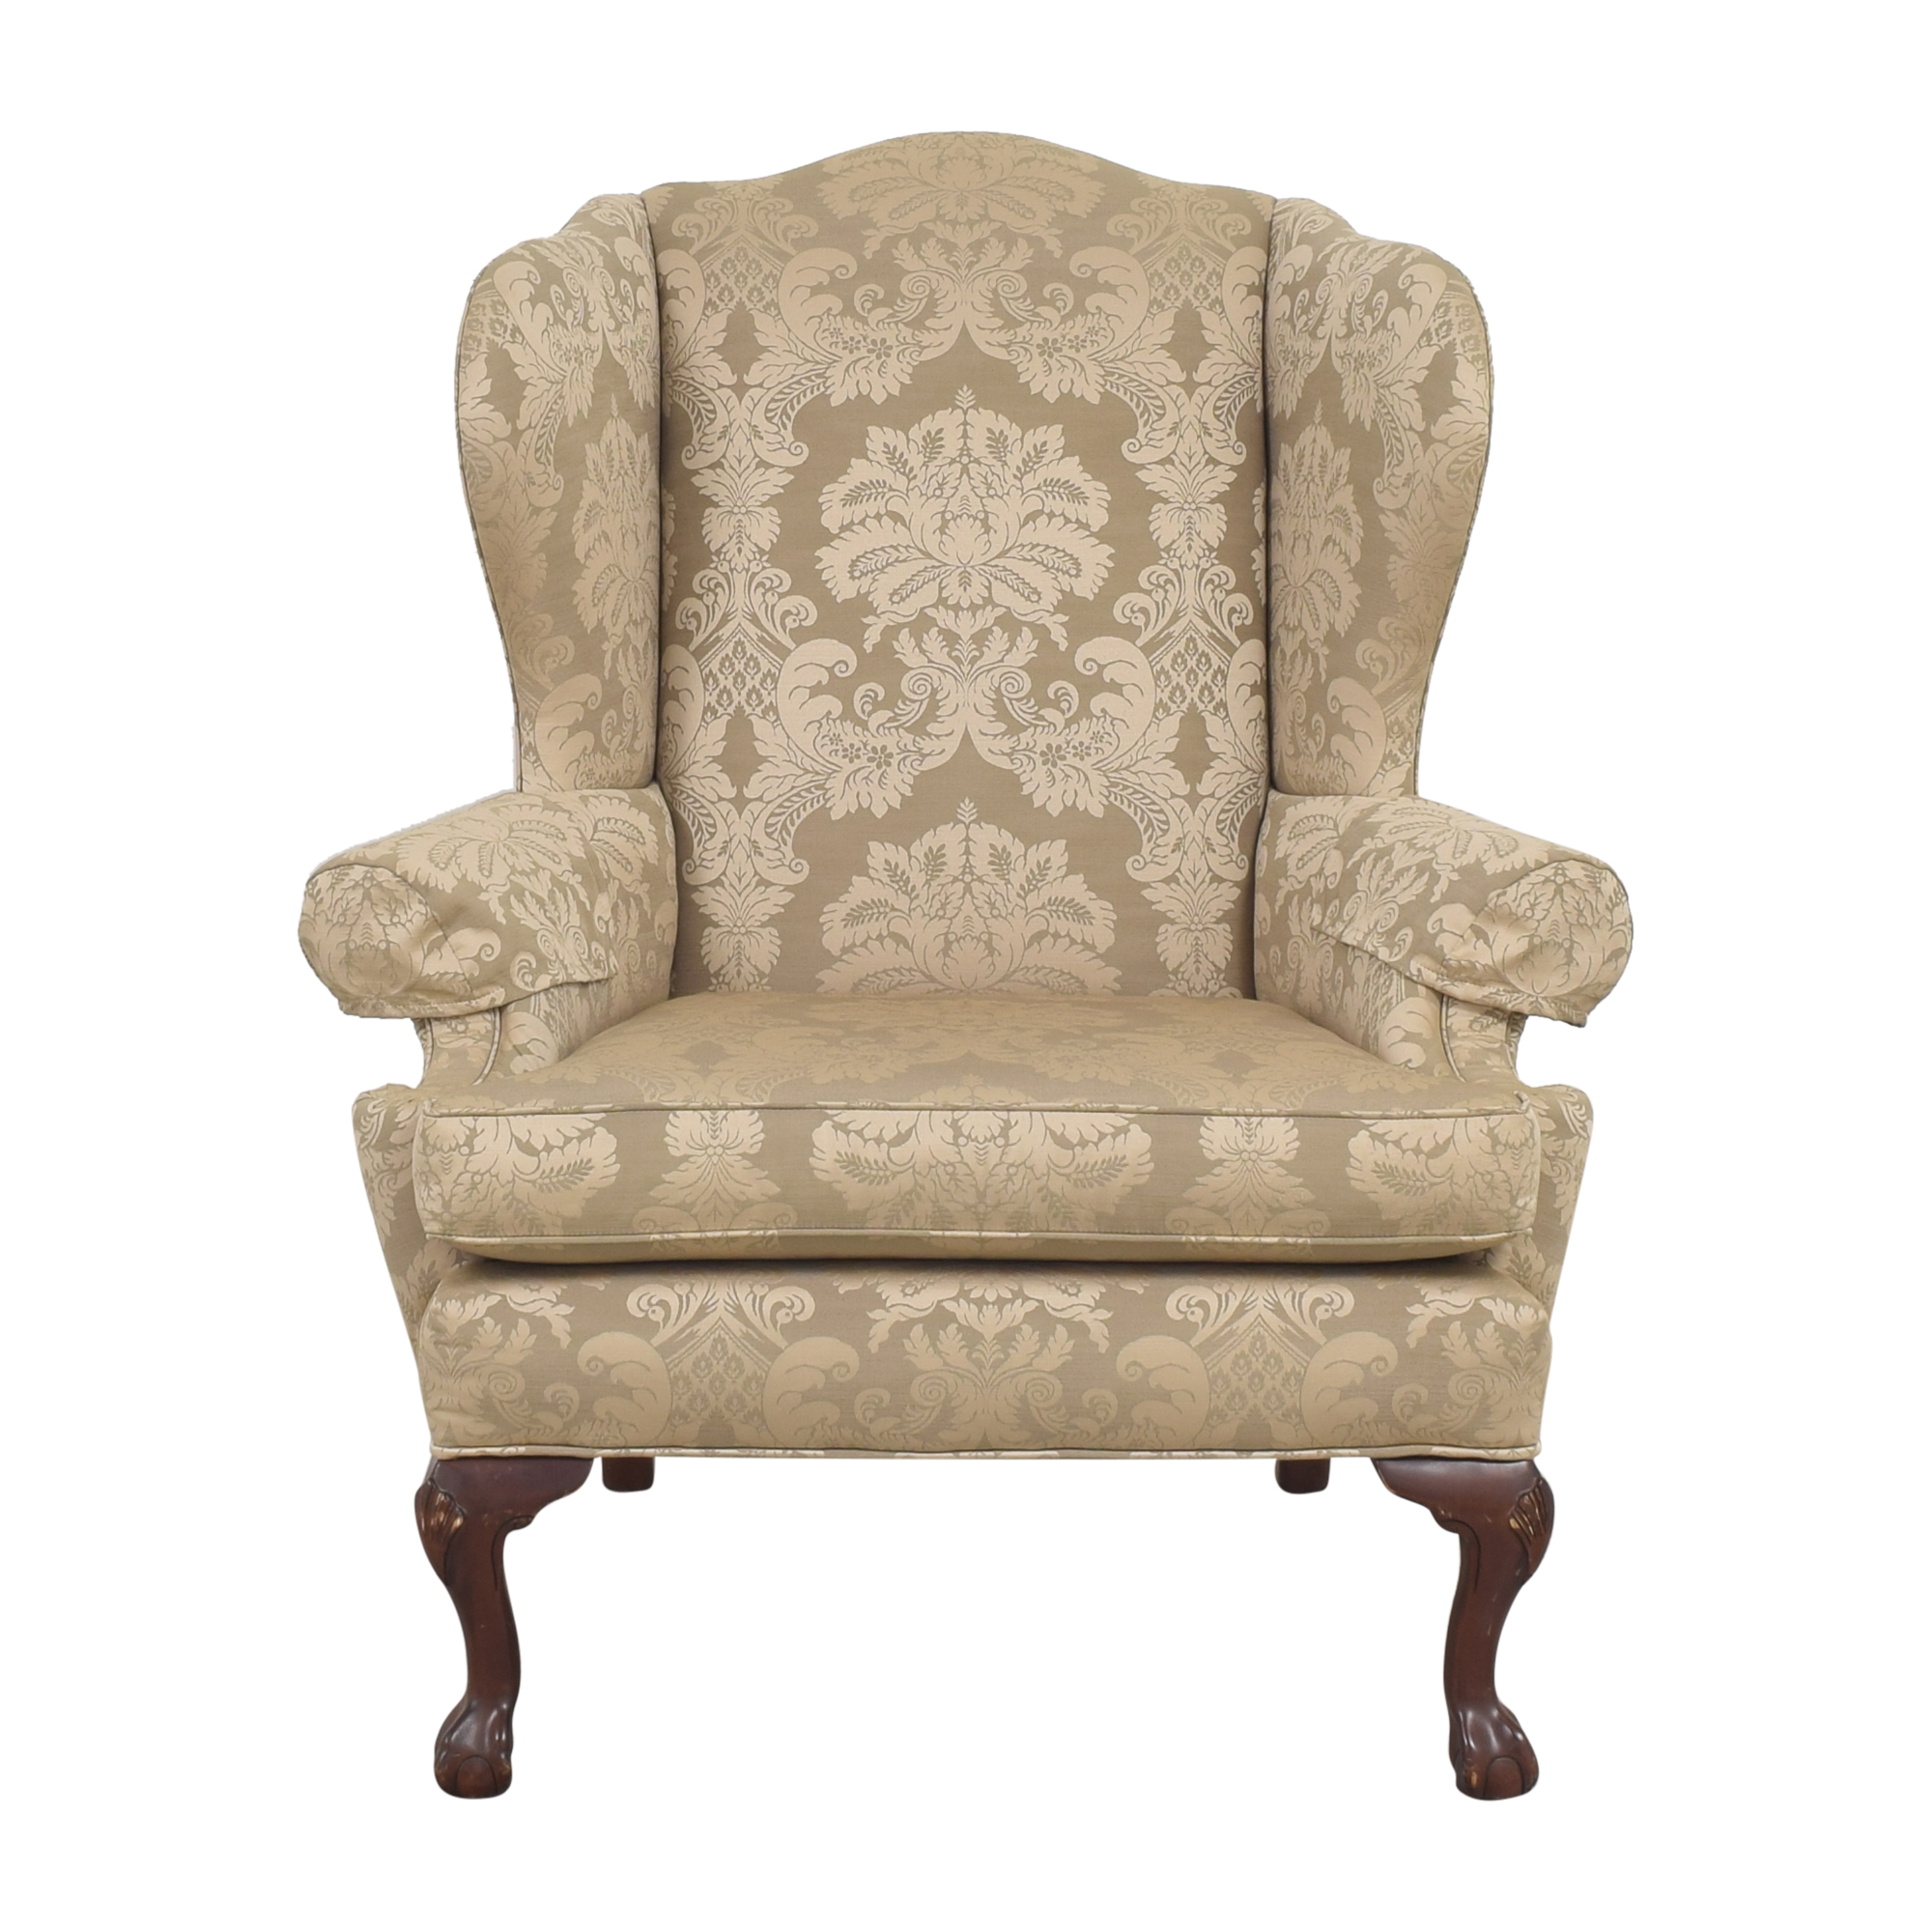 Ethan Allen Ethan Allen Wing Accent Chair price